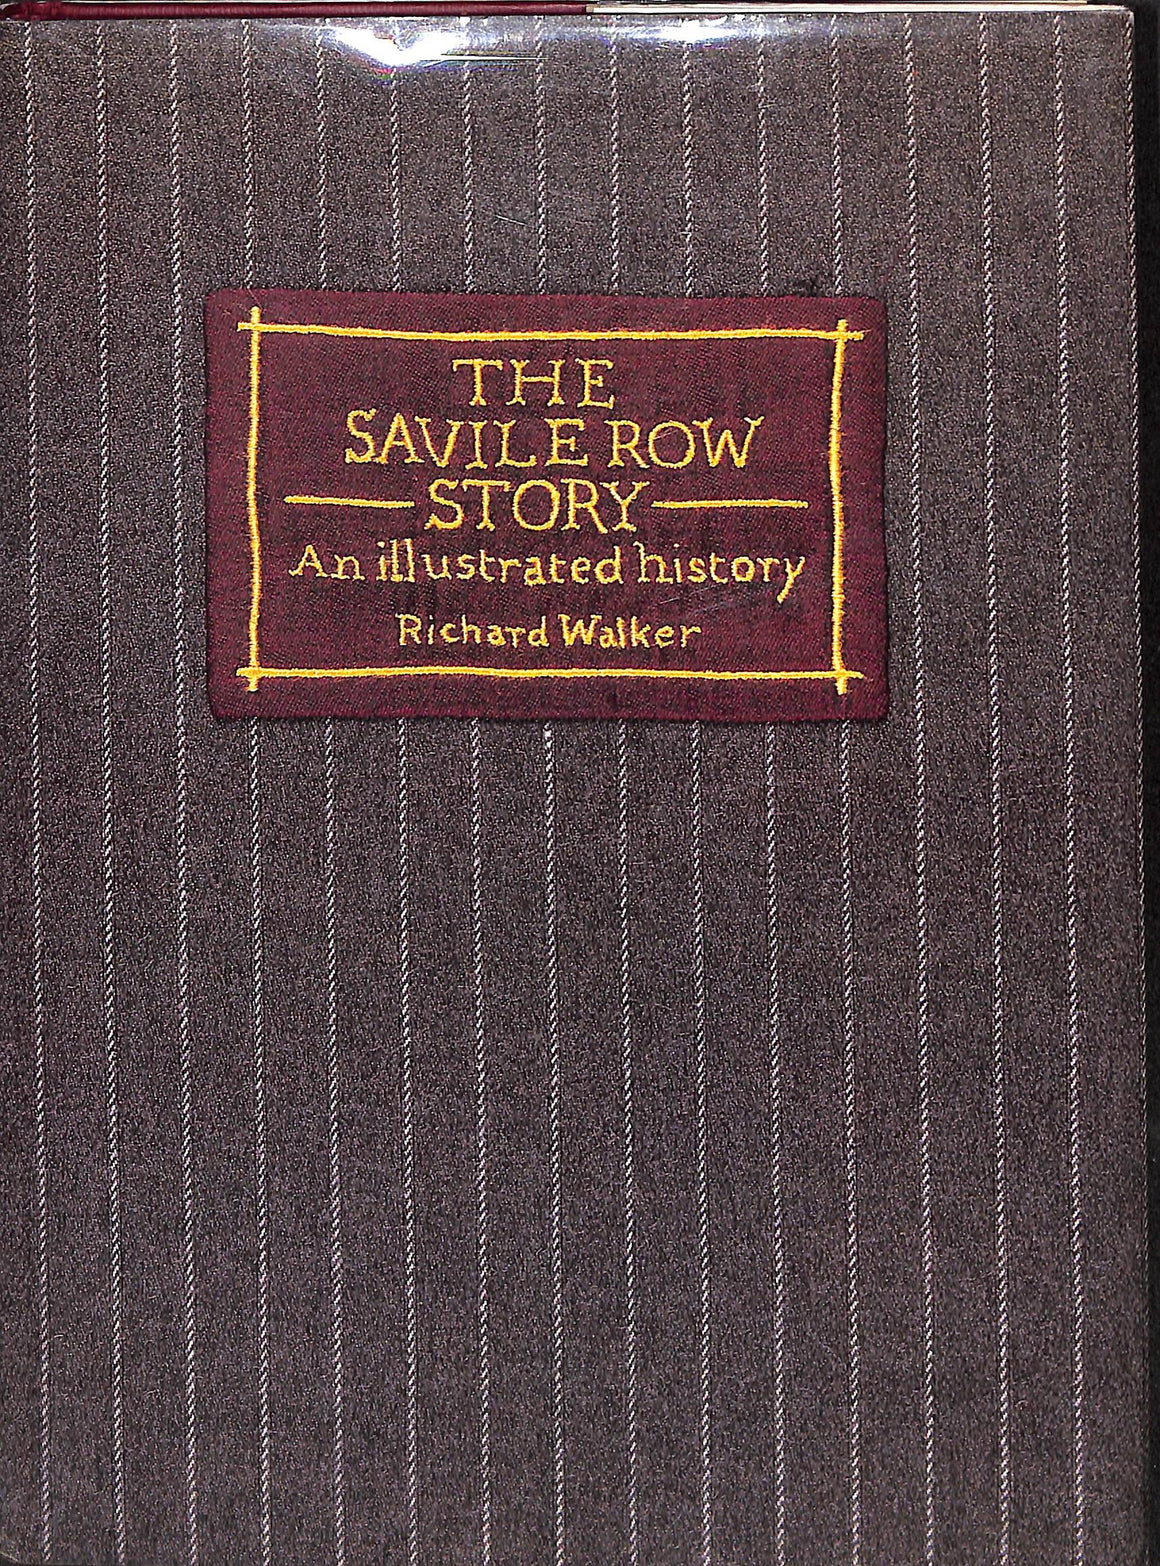 The Savile Row Story An Illustrated History by Richard Walker